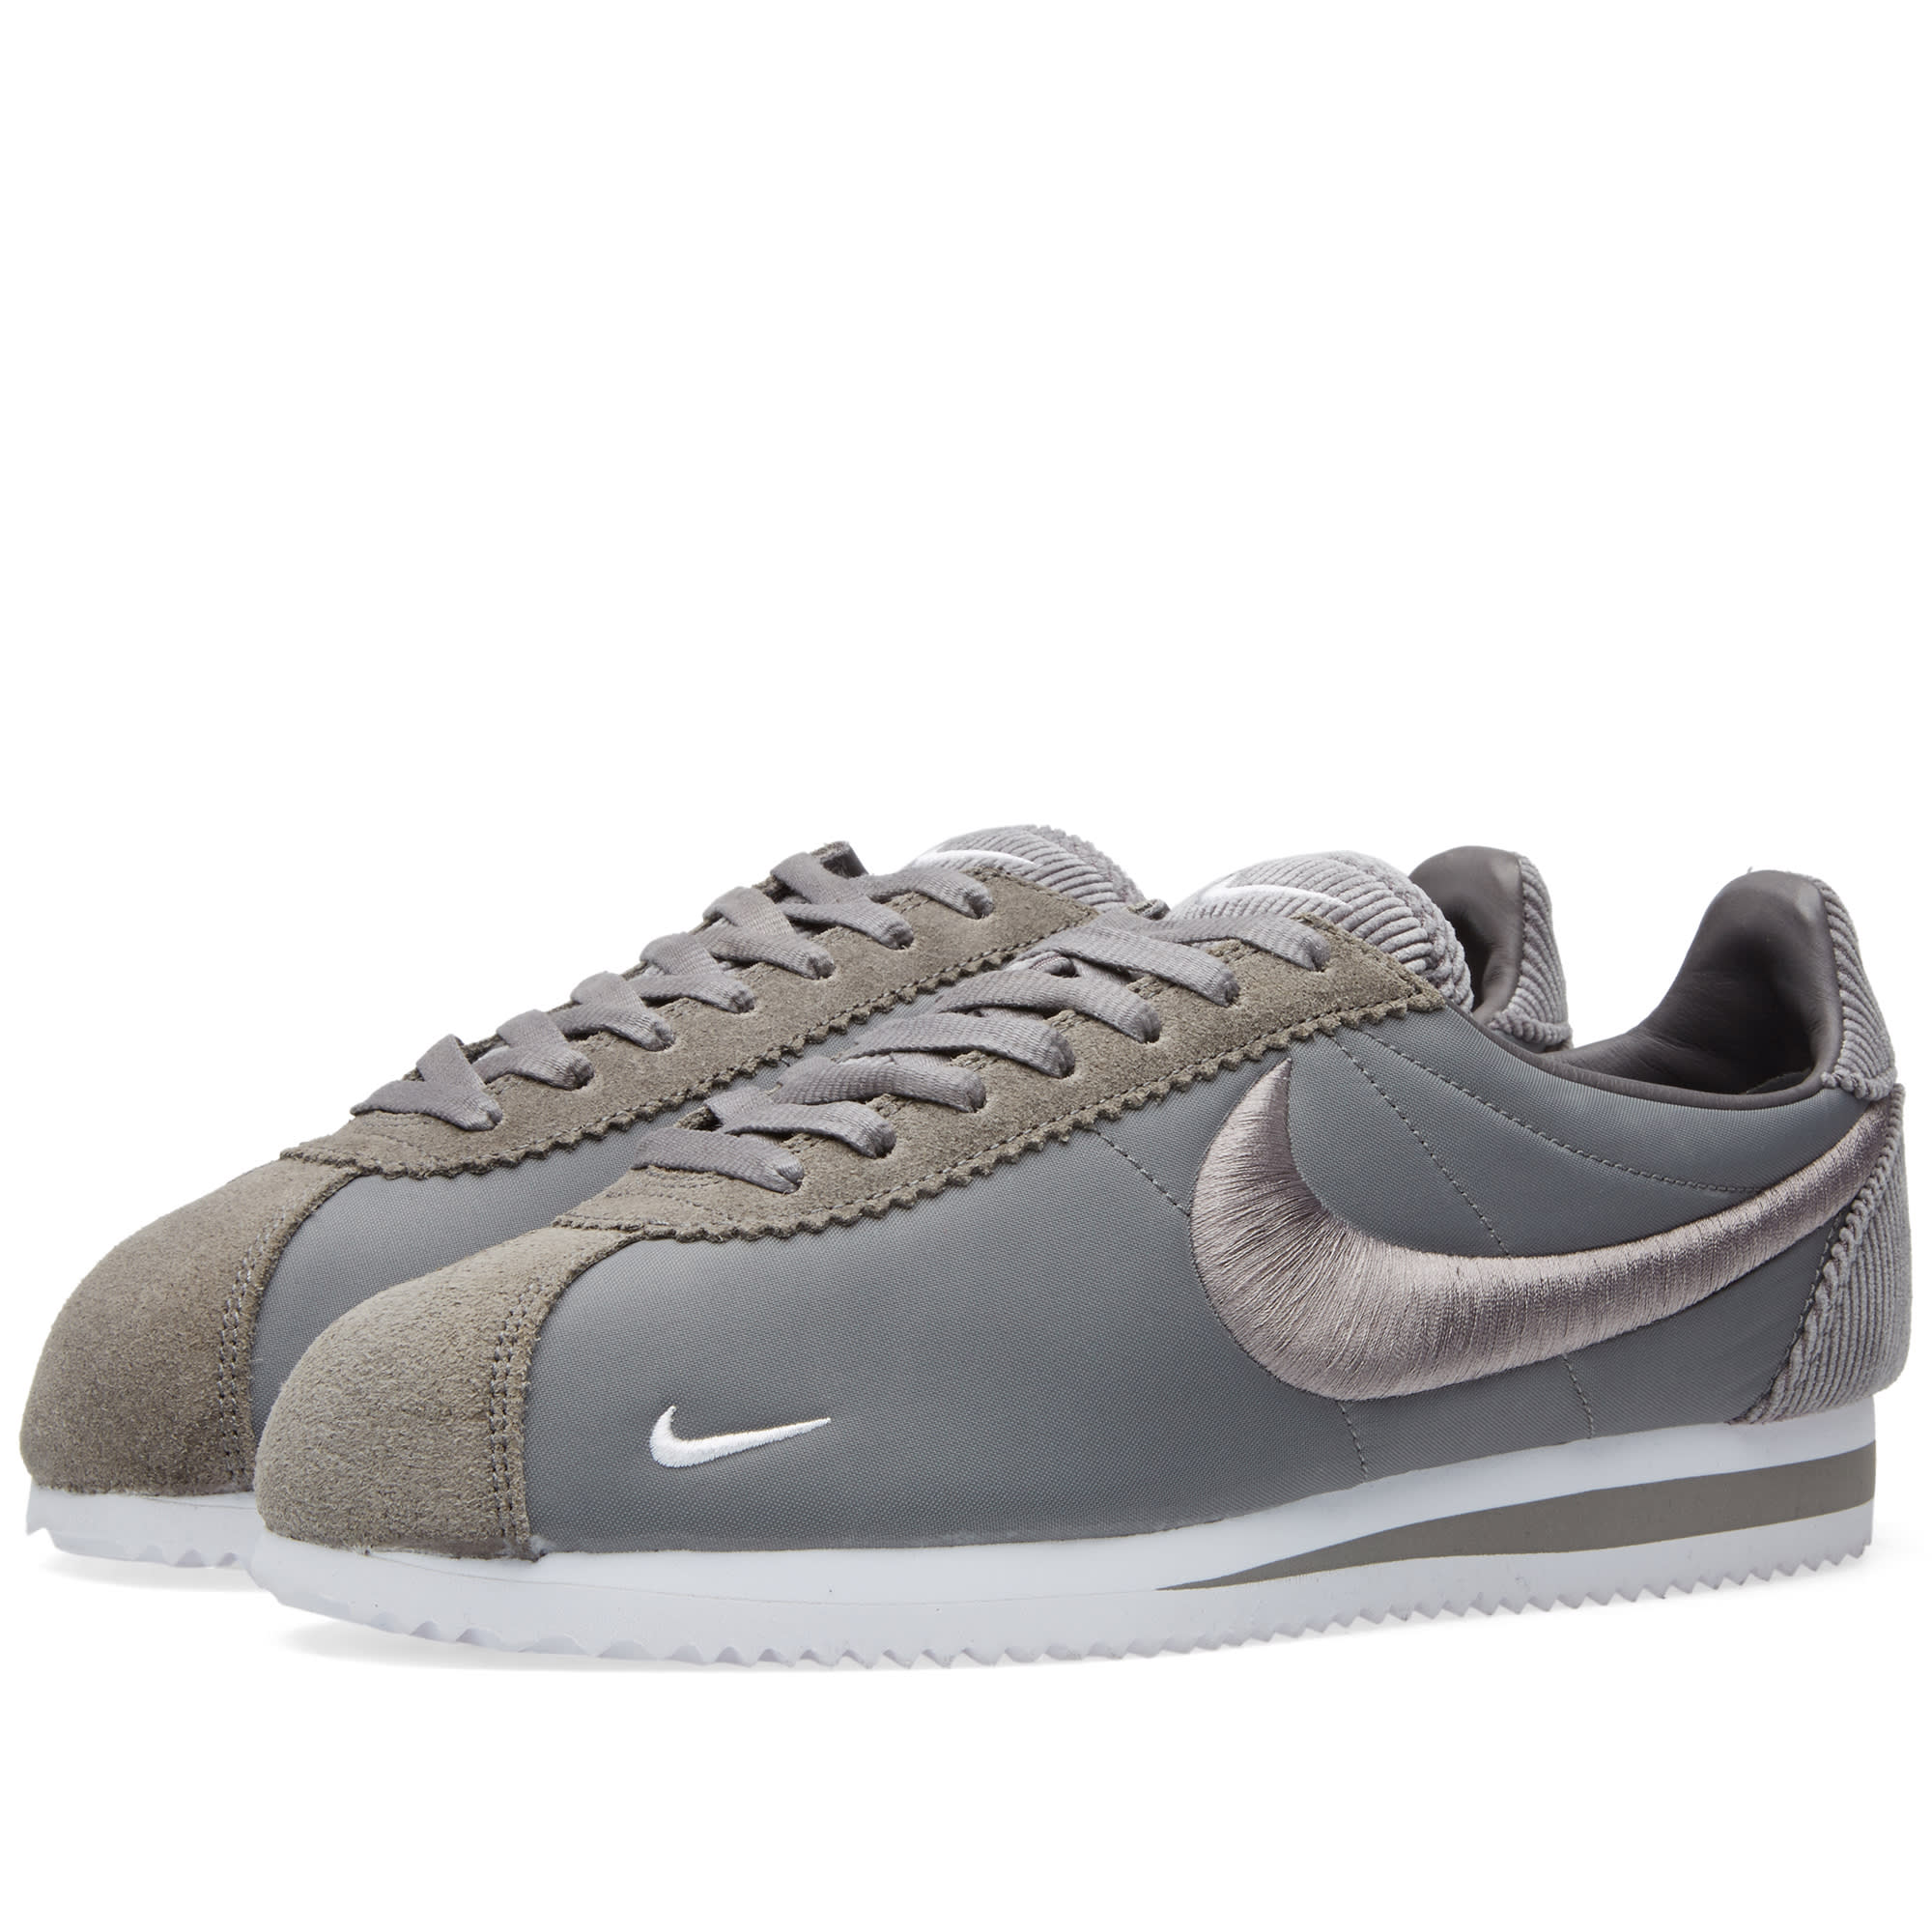 nike classic cortez sp canyon grey white. Black Bedroom Furniture Sets. Home Design Ideas